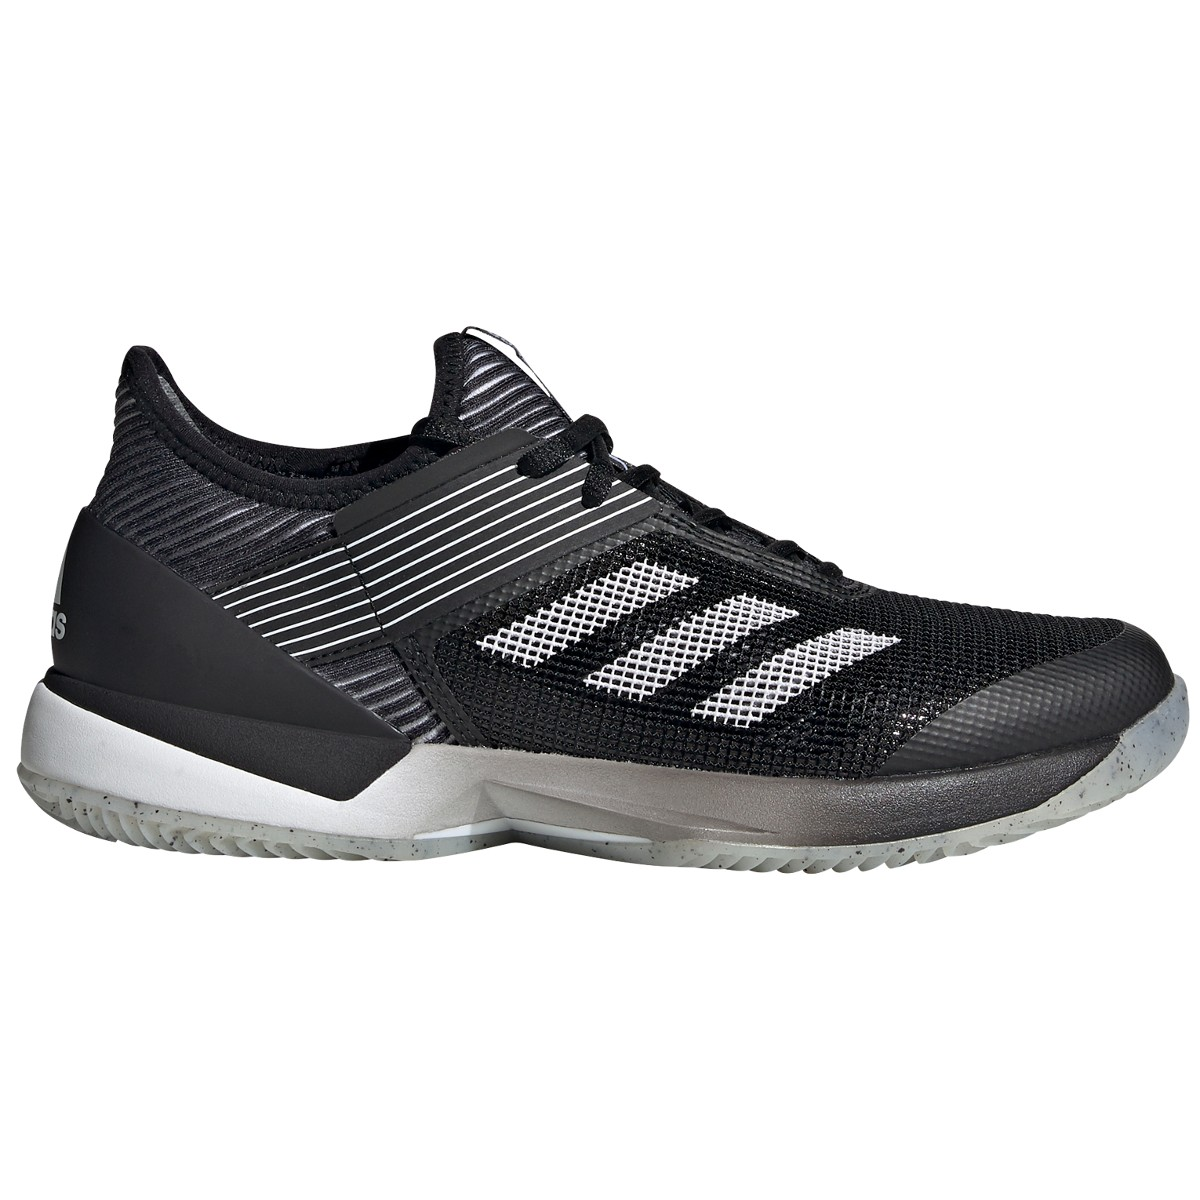 WOMEN'S ADIDAS ADIZERO UBERSONIC 3 CLAY COURT SHOES